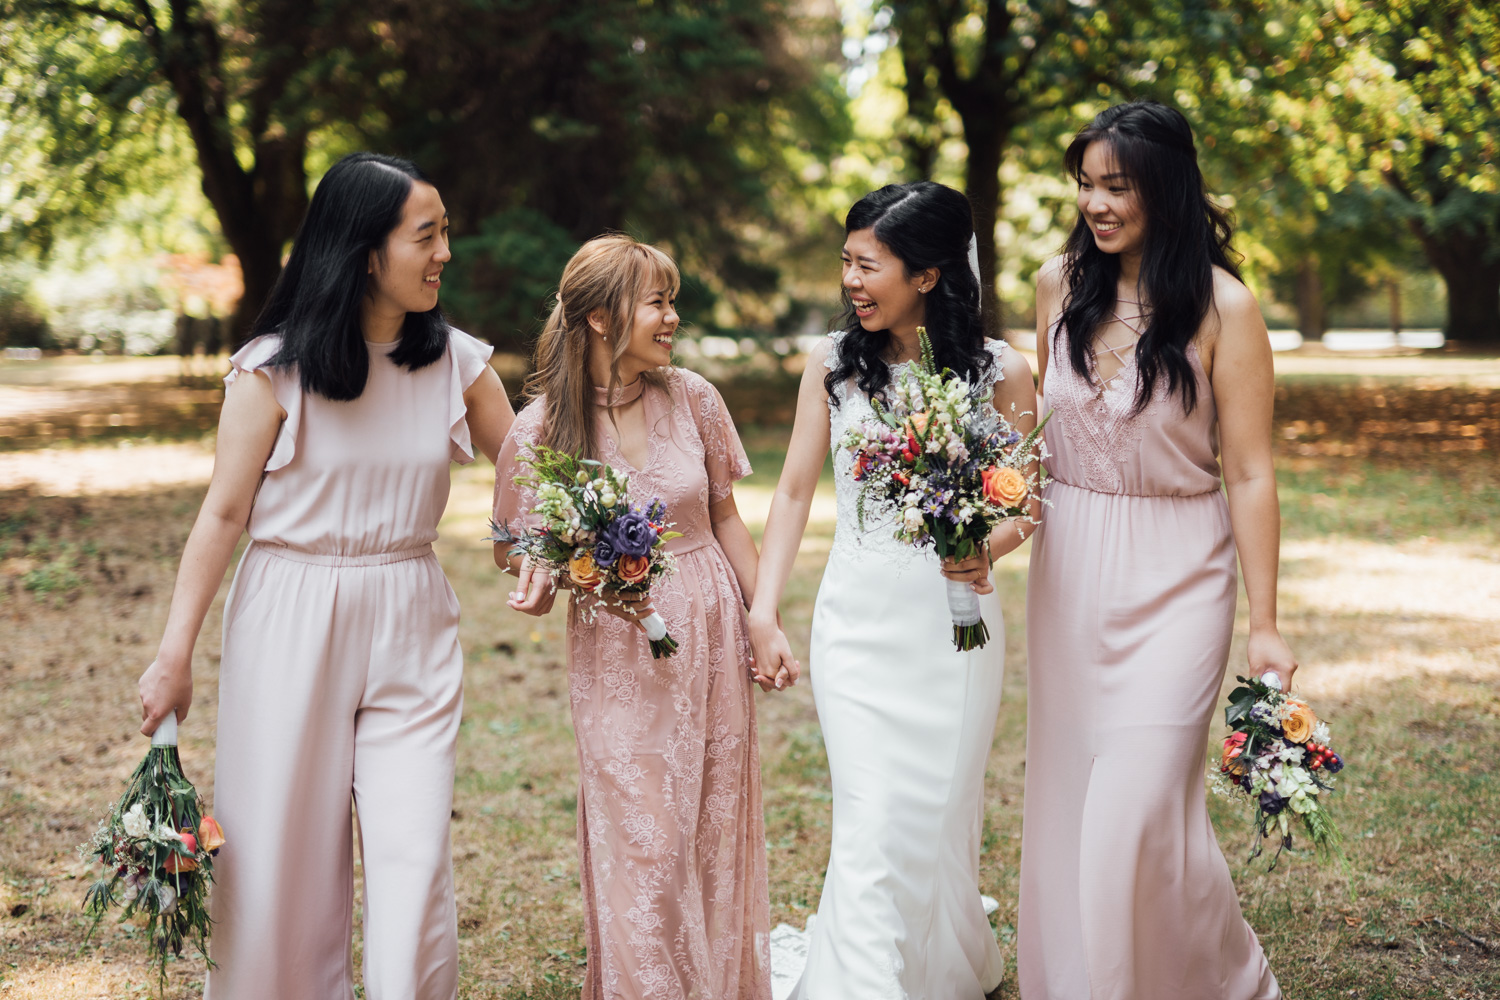 shaughnessy park bridal party portraits in vancouver wedding photography